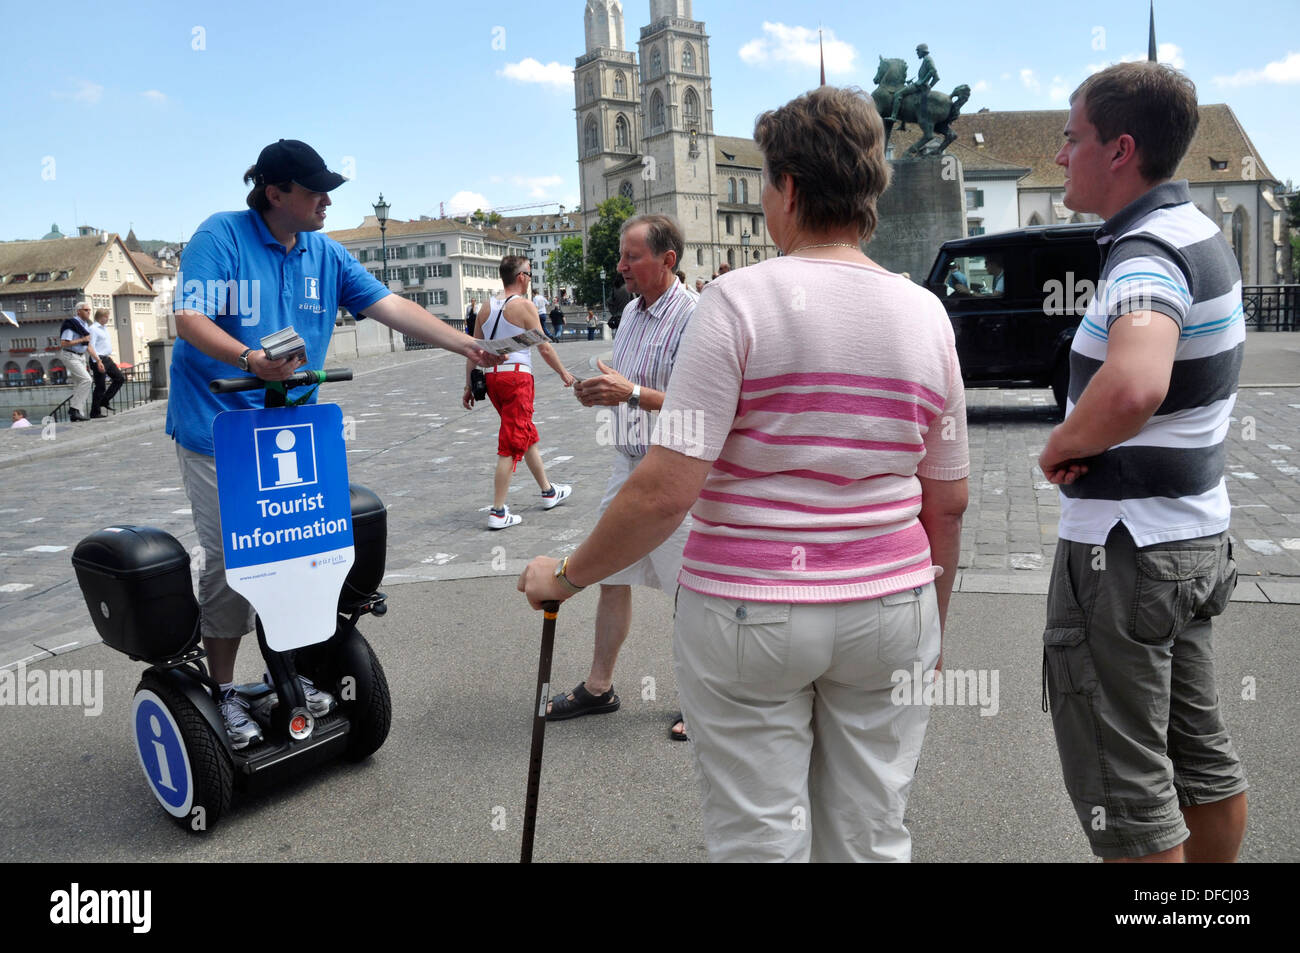 Zurich (Switzerland): a tourism board employee giving information to tourists in the city's center - Stock Image